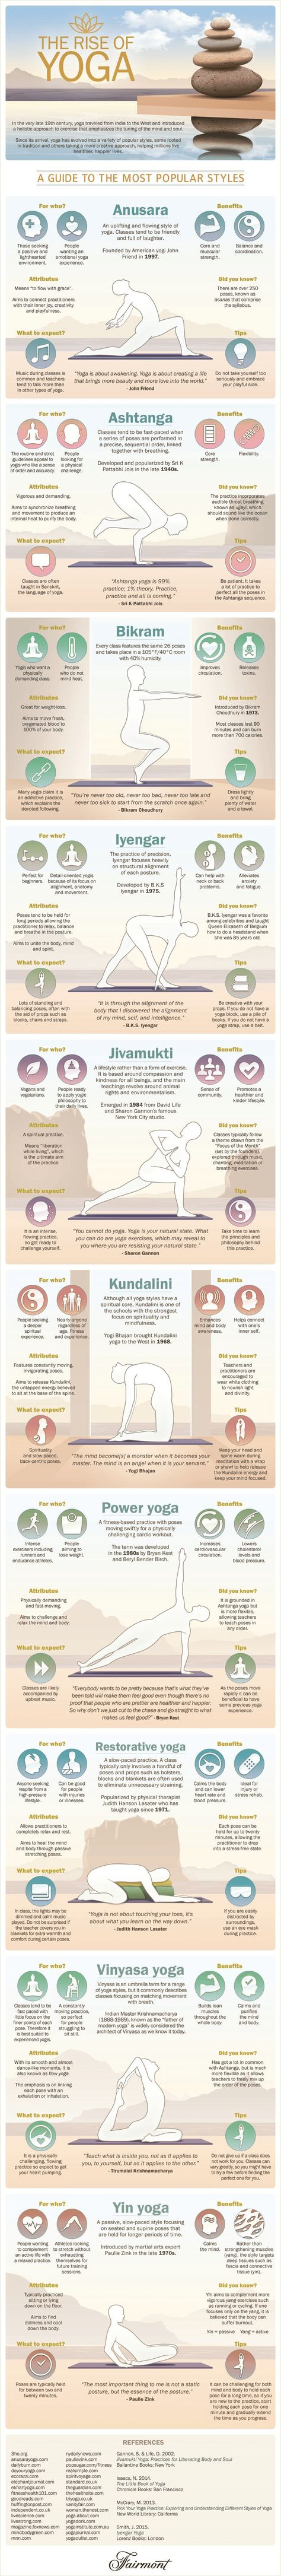 Yoga got your head spinning? A quick guide to which type might be your perfect match. | Fit Bottomed Girls